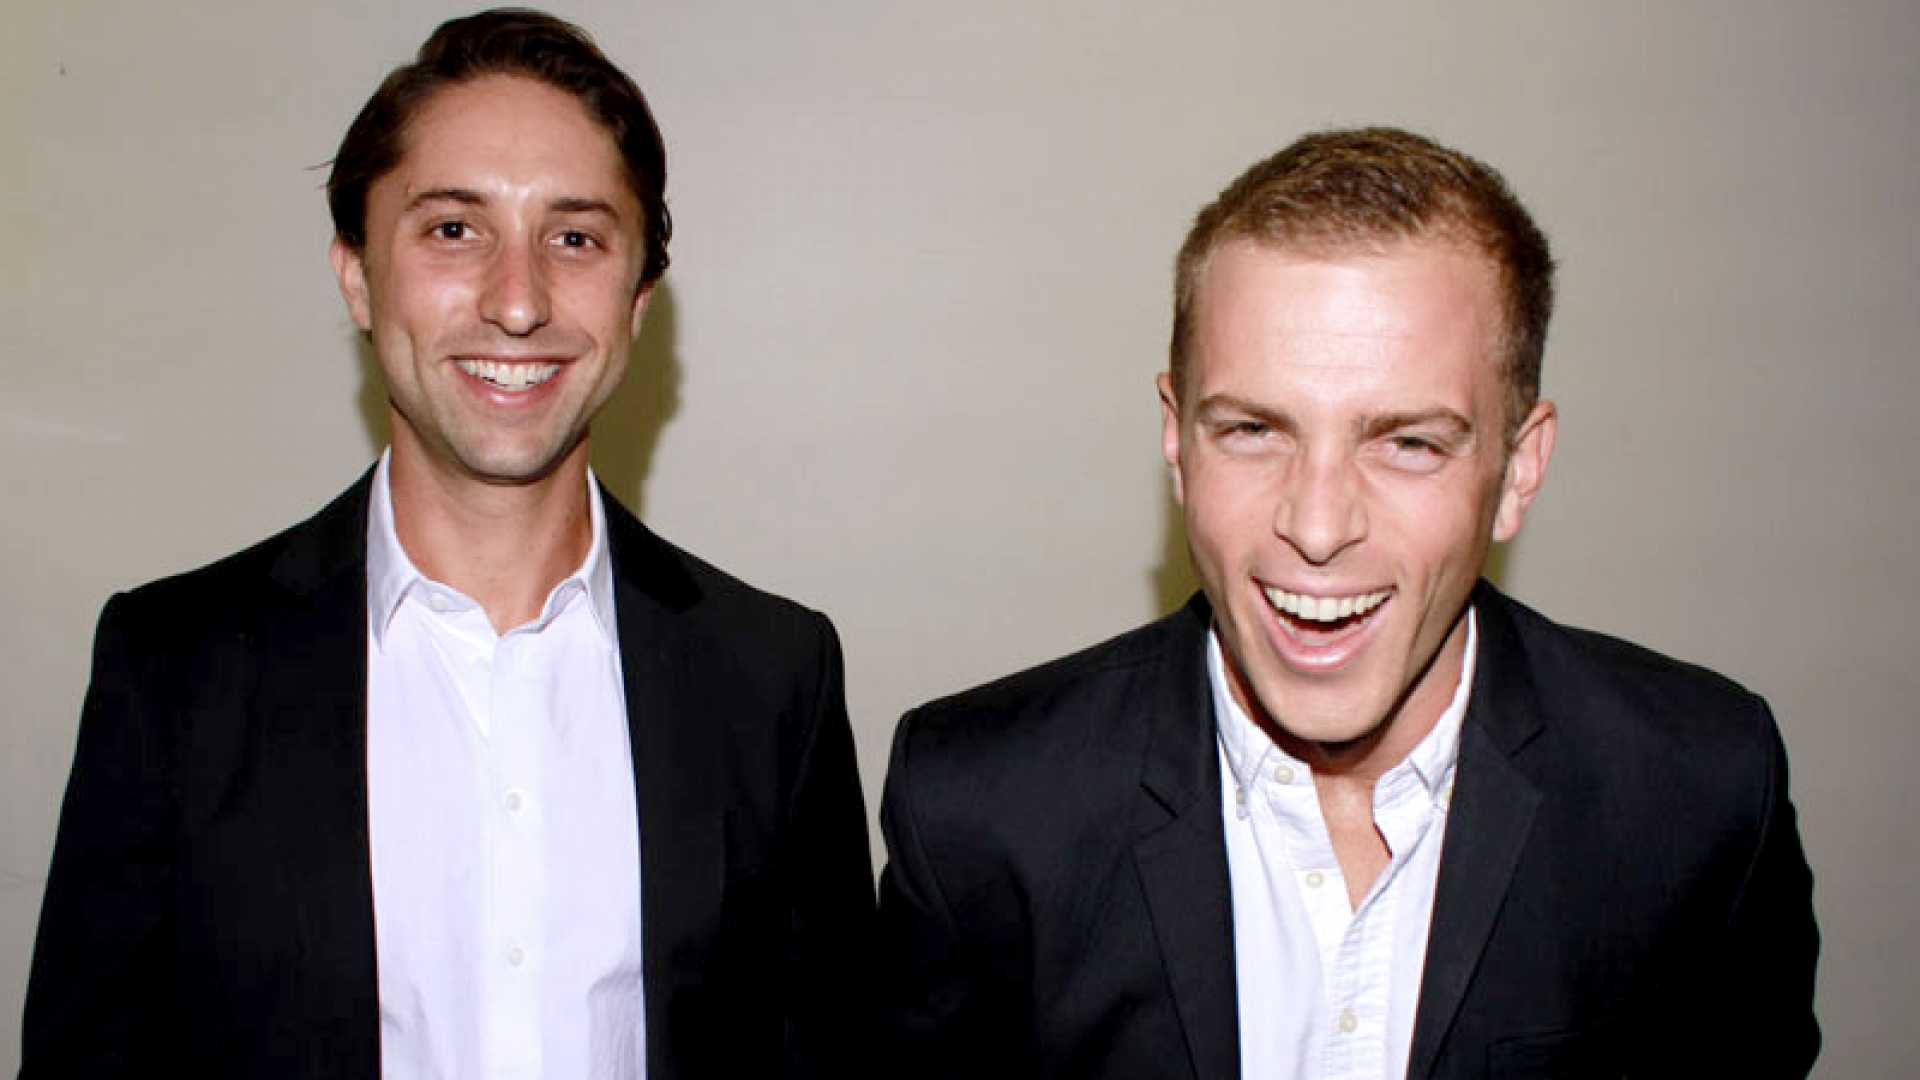 Co-founders Jaspar Weir and Bryce Maddock bootstrapped their company, which employs more than 5,000 people in the Philippines and elsewhere, with an initial $25,000 in savings.